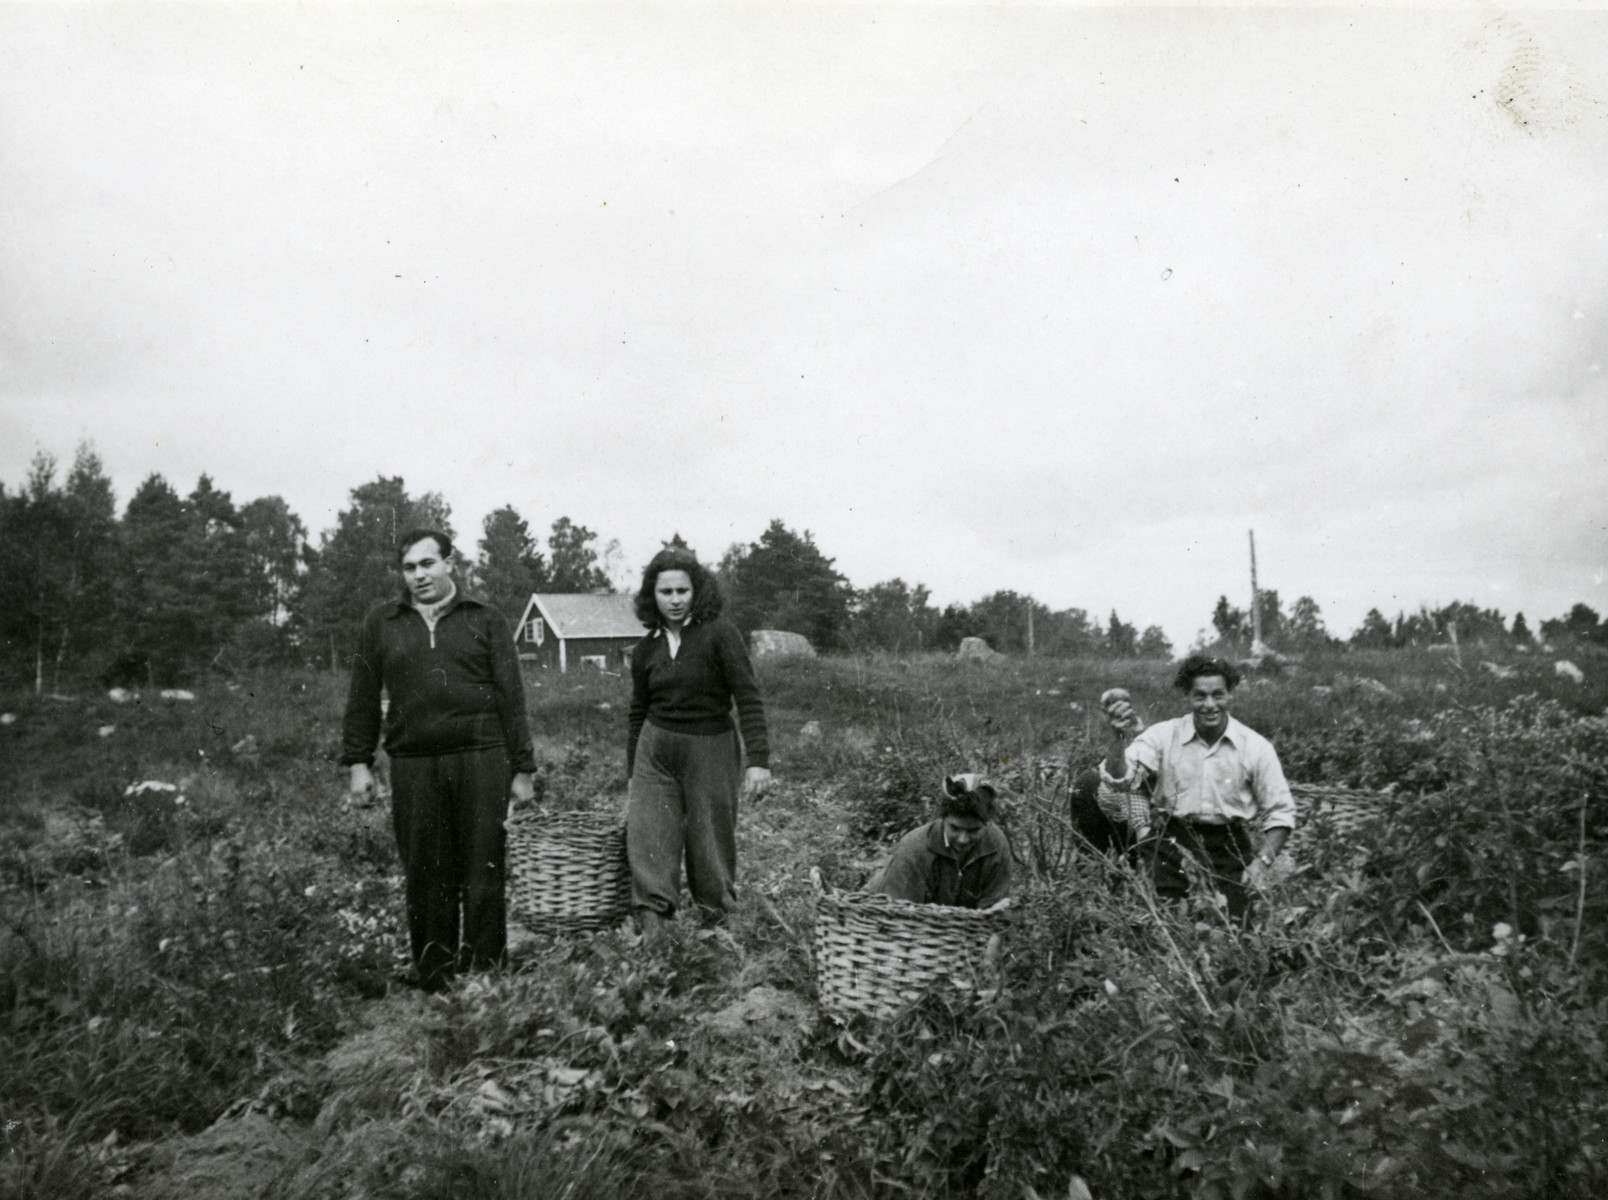 Abraham Kischinovsky (far right) and a group of friends goes berry picking in wartime Sweden.